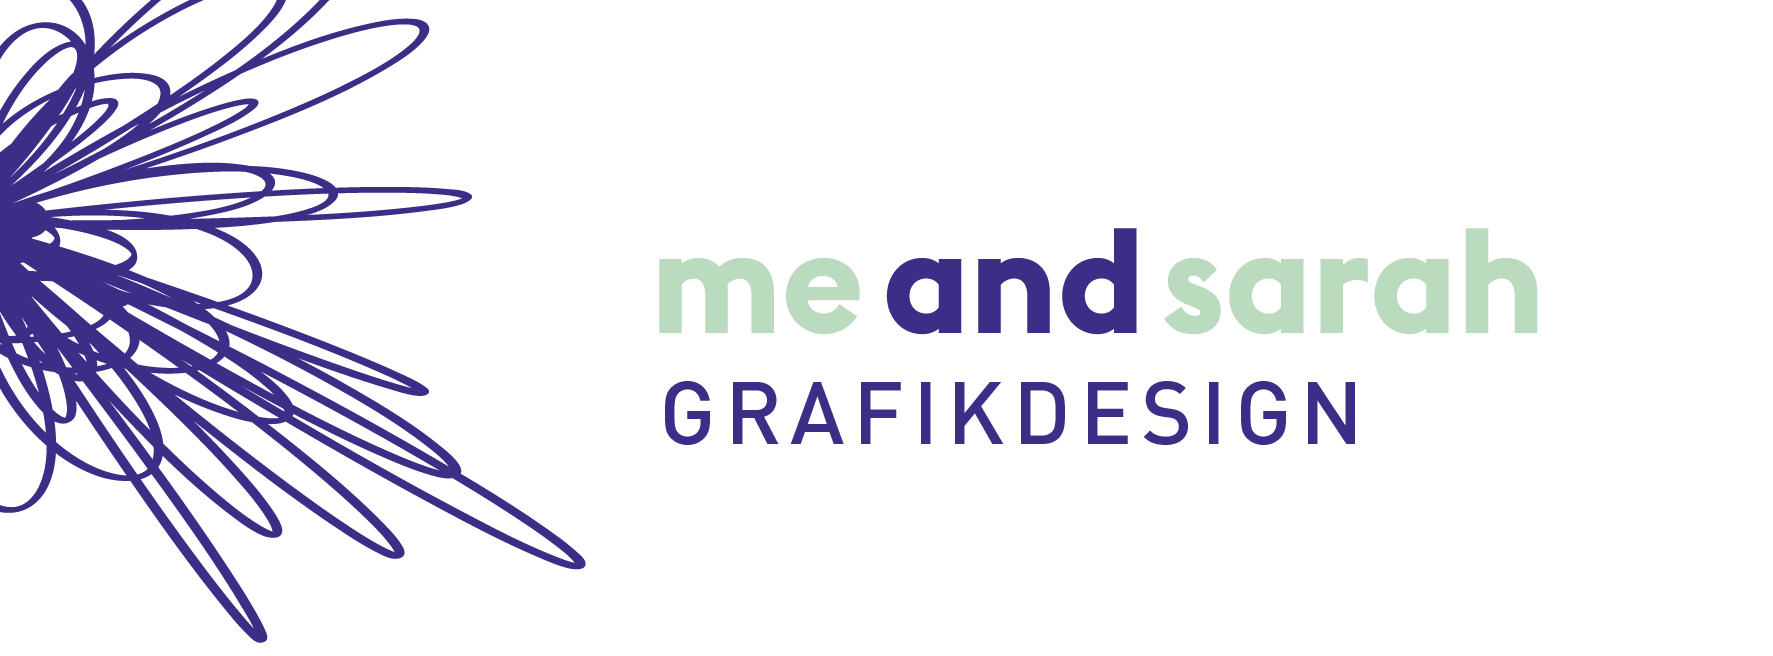 meandsarah – Grafikdesign